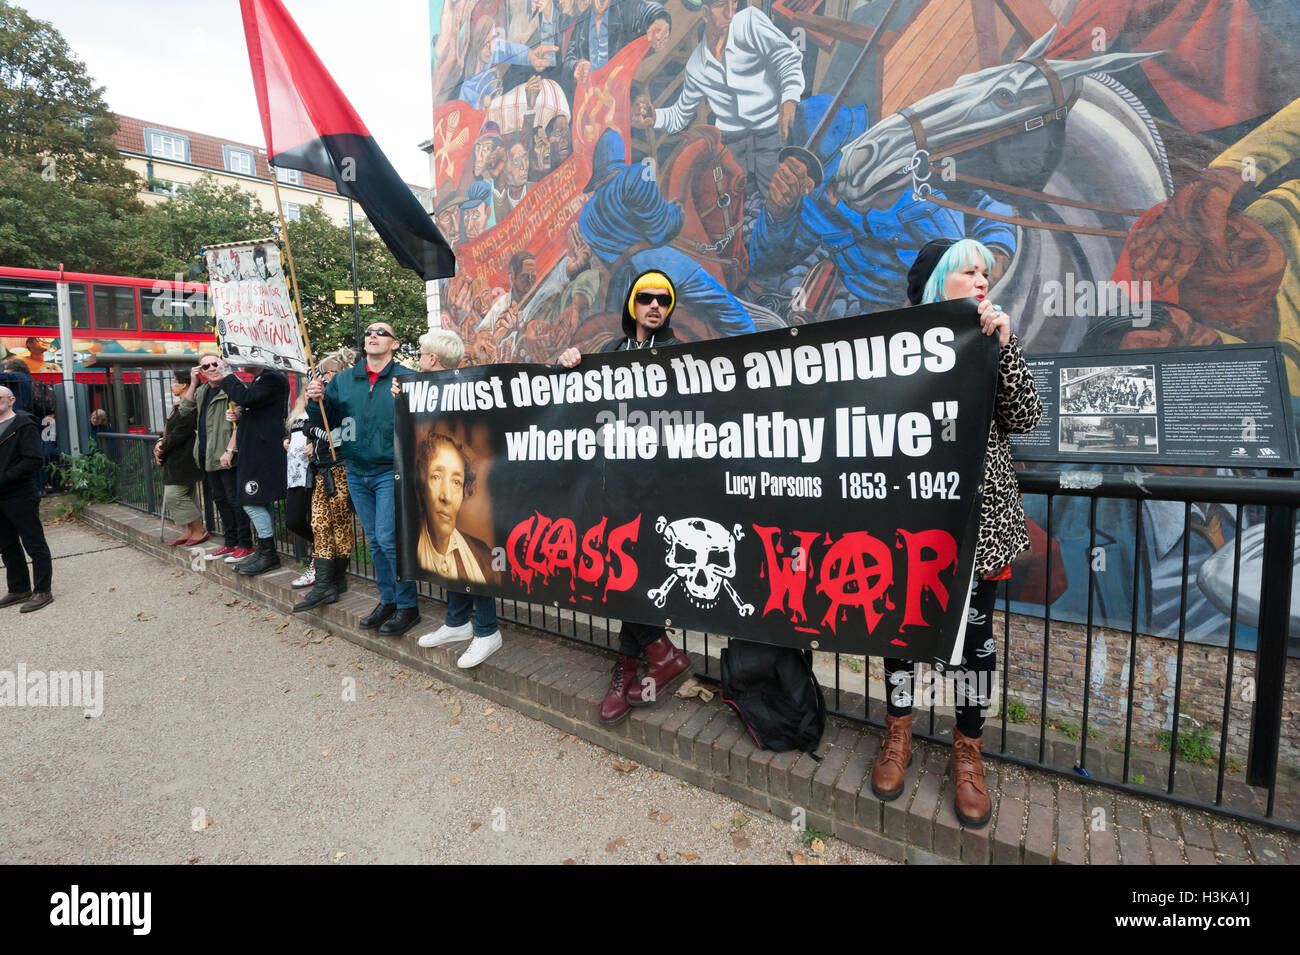 London, UK. 9th October 2016. Class War  banners in front of the Cable Street mural as marchers arrive. Class War - Stock Image